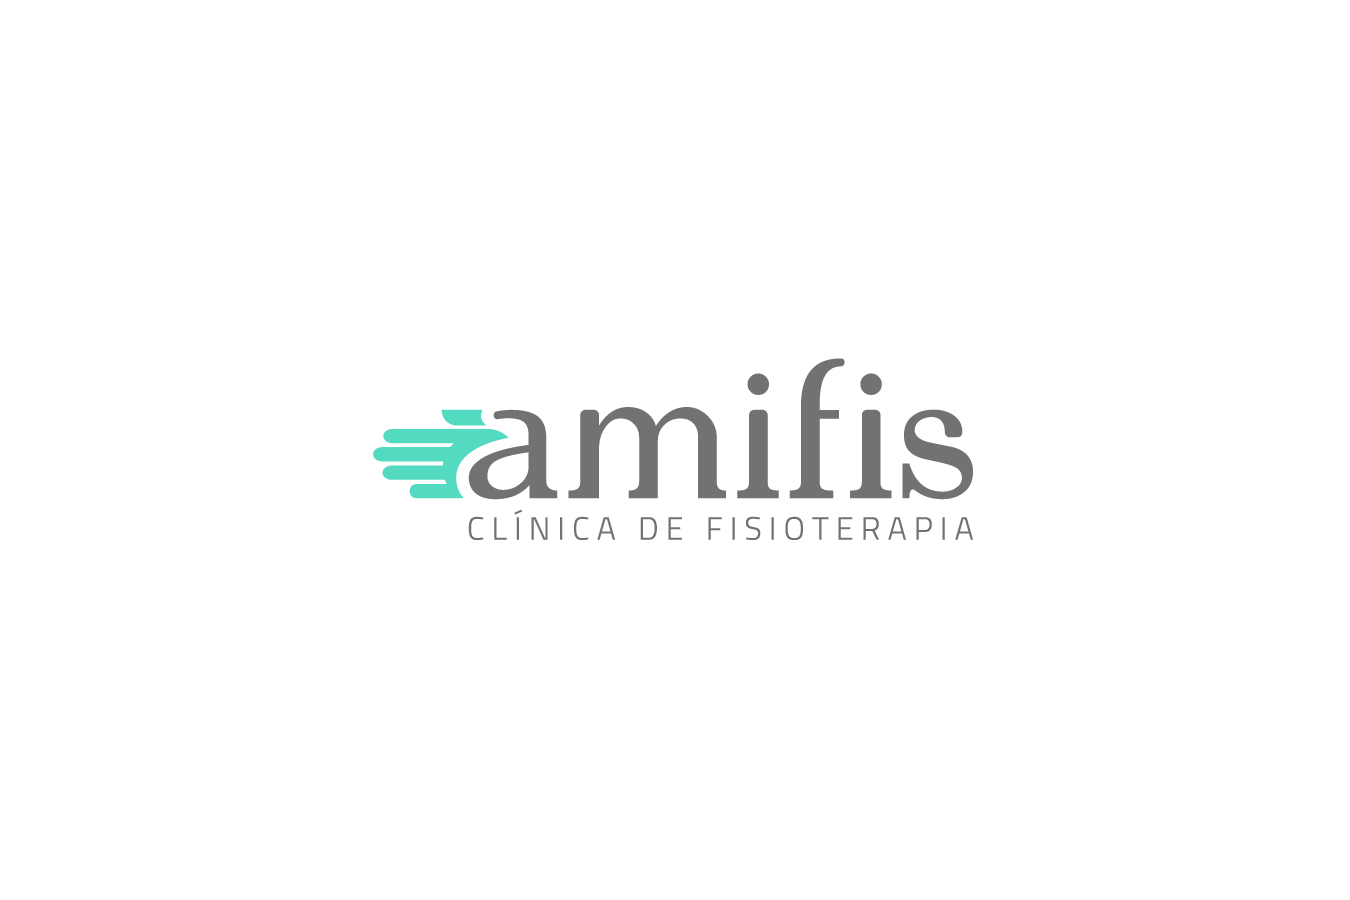 AMIFIS